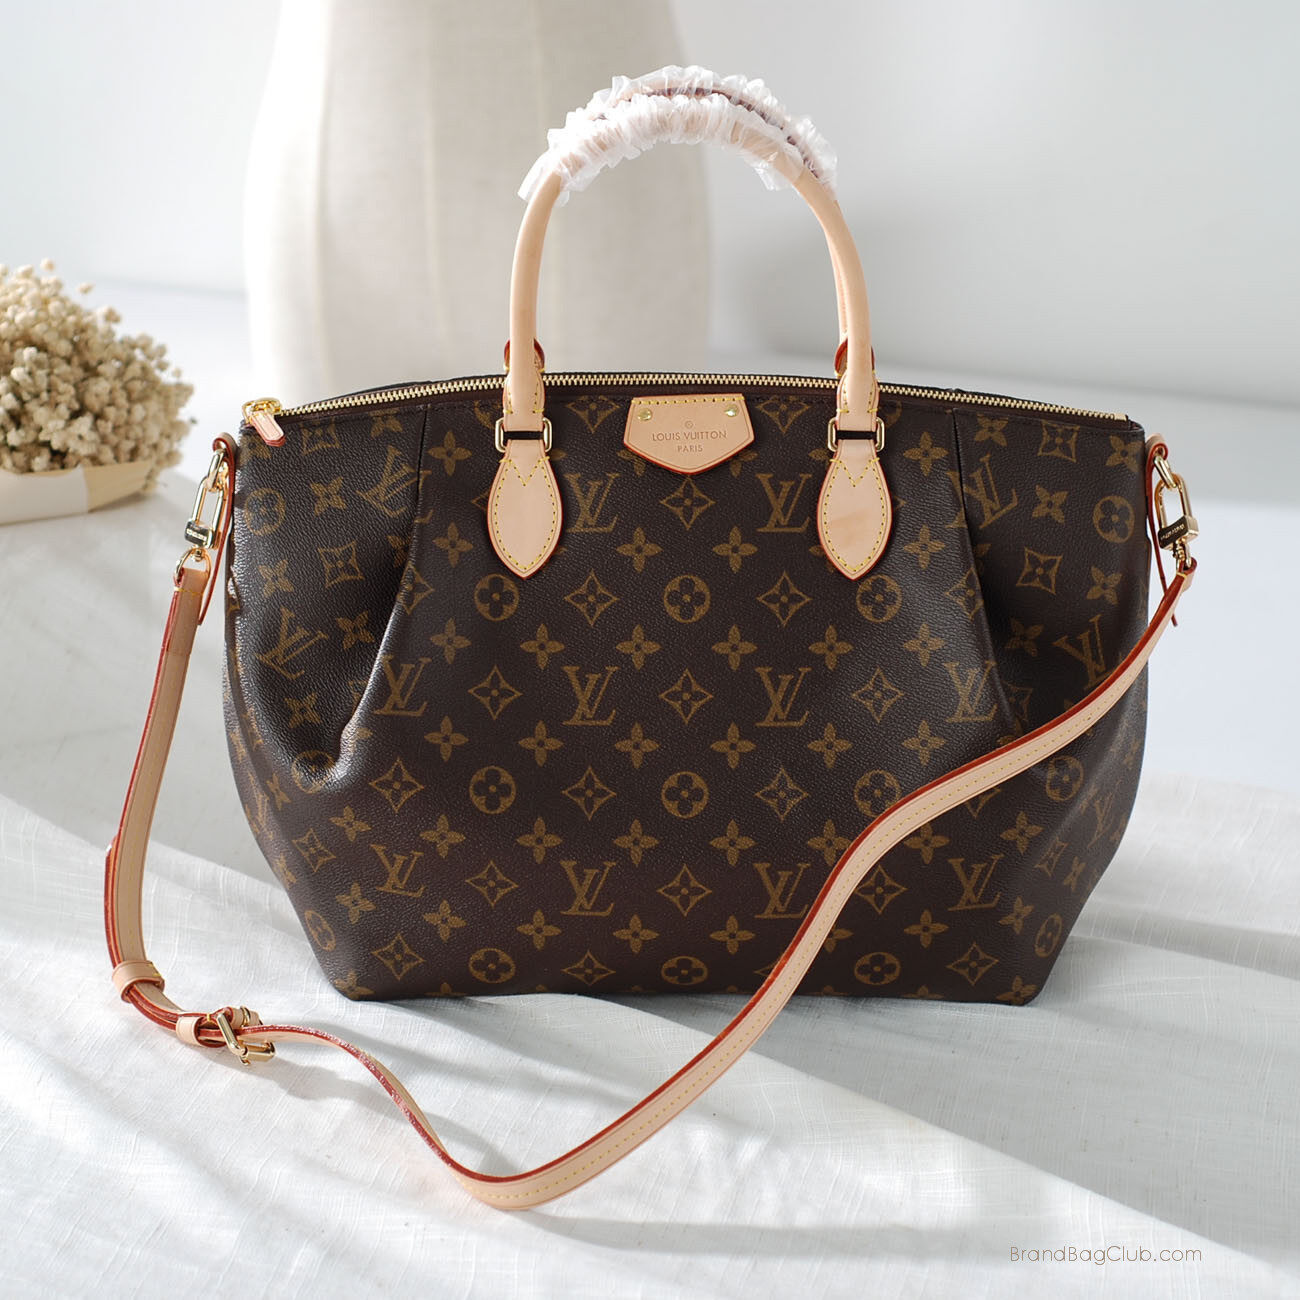 Shop authentic Louis Vuitton Handbags at up to 90% off. The RealReal is the world's #1 luxury consignment online store.